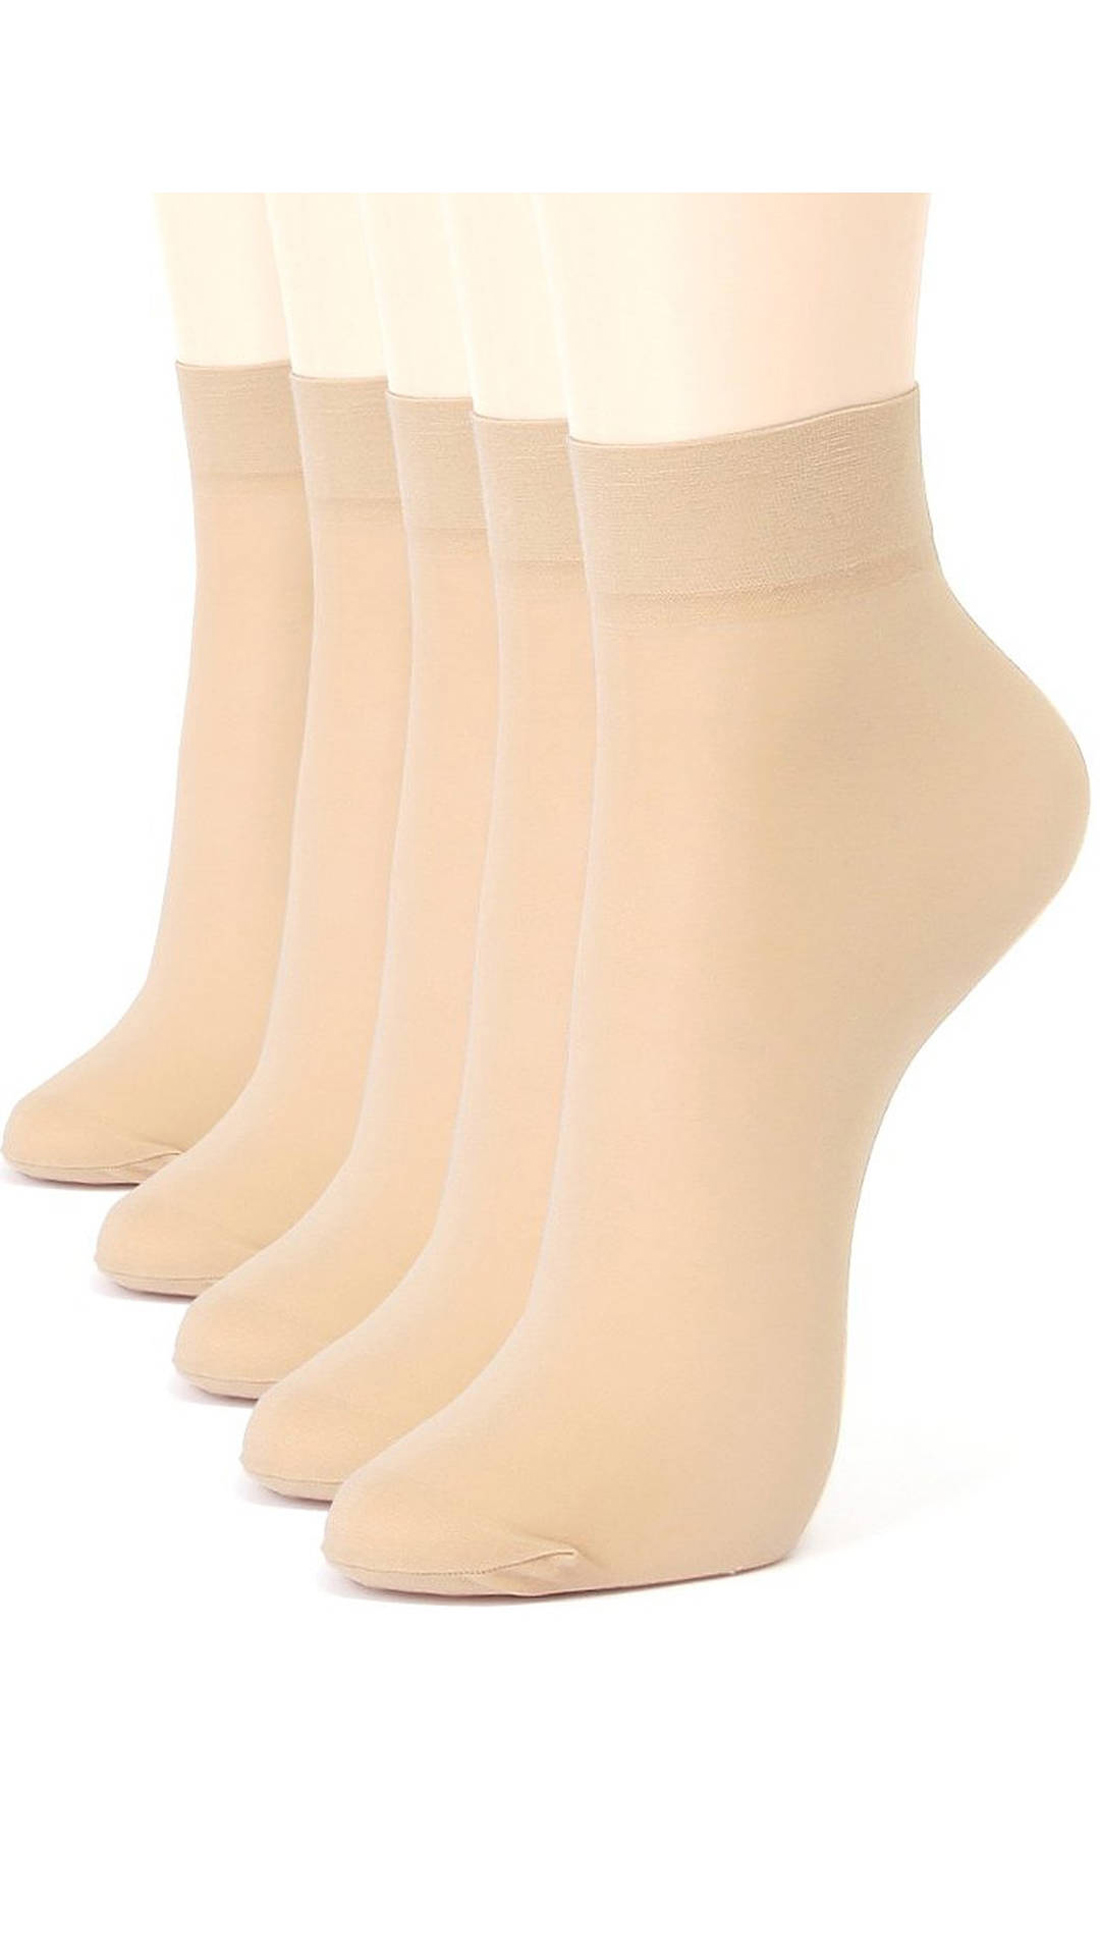 Women Transparent Socks , Nylon socks , Cotton Socks_2